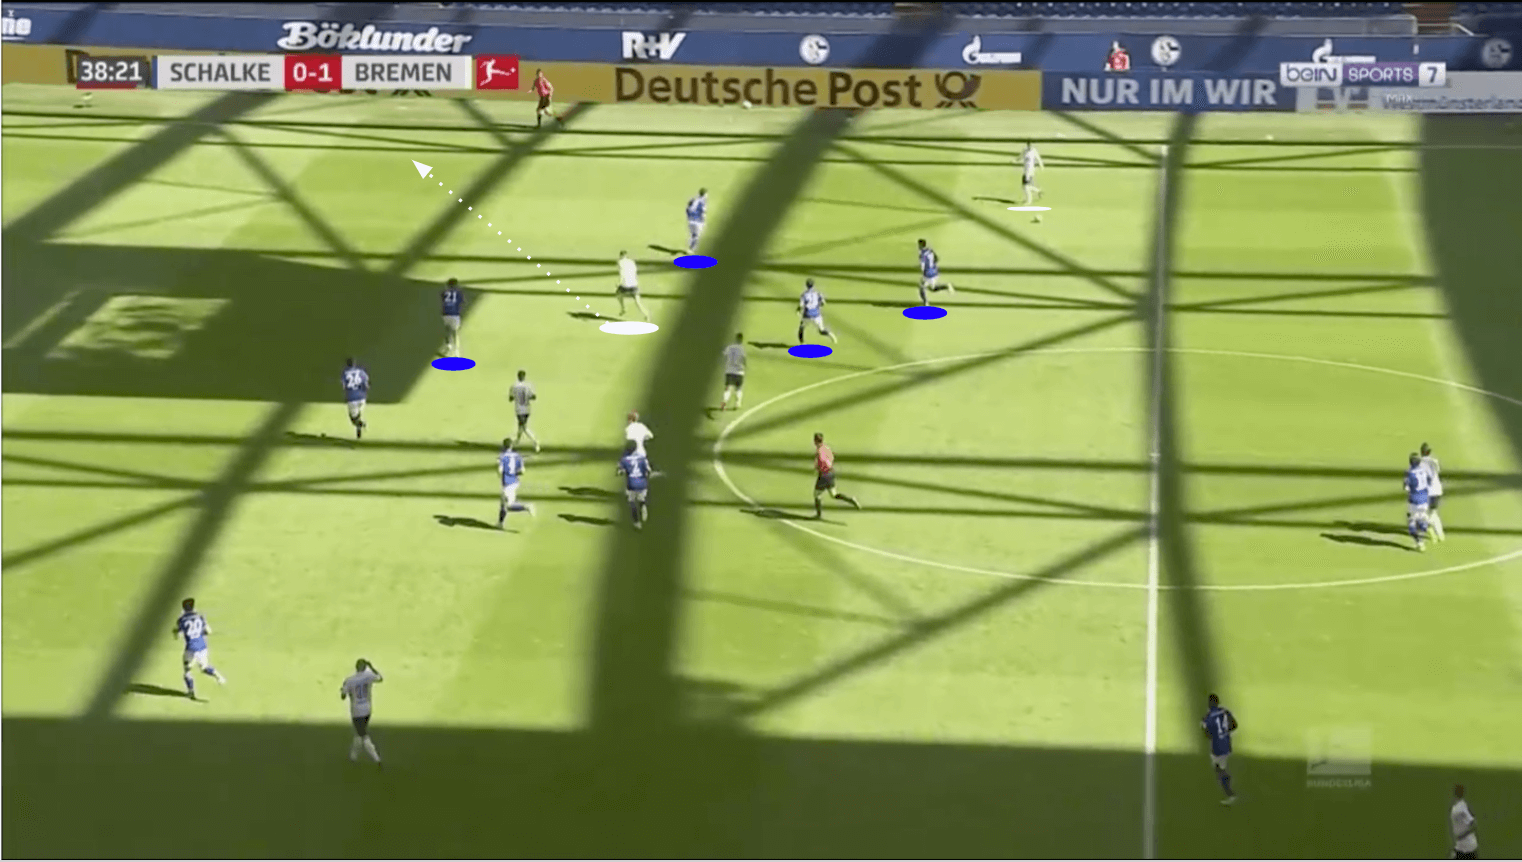 Bundesliga 2019/20: Werder Bremen vs Schalke 04 - tactical analysis tactics